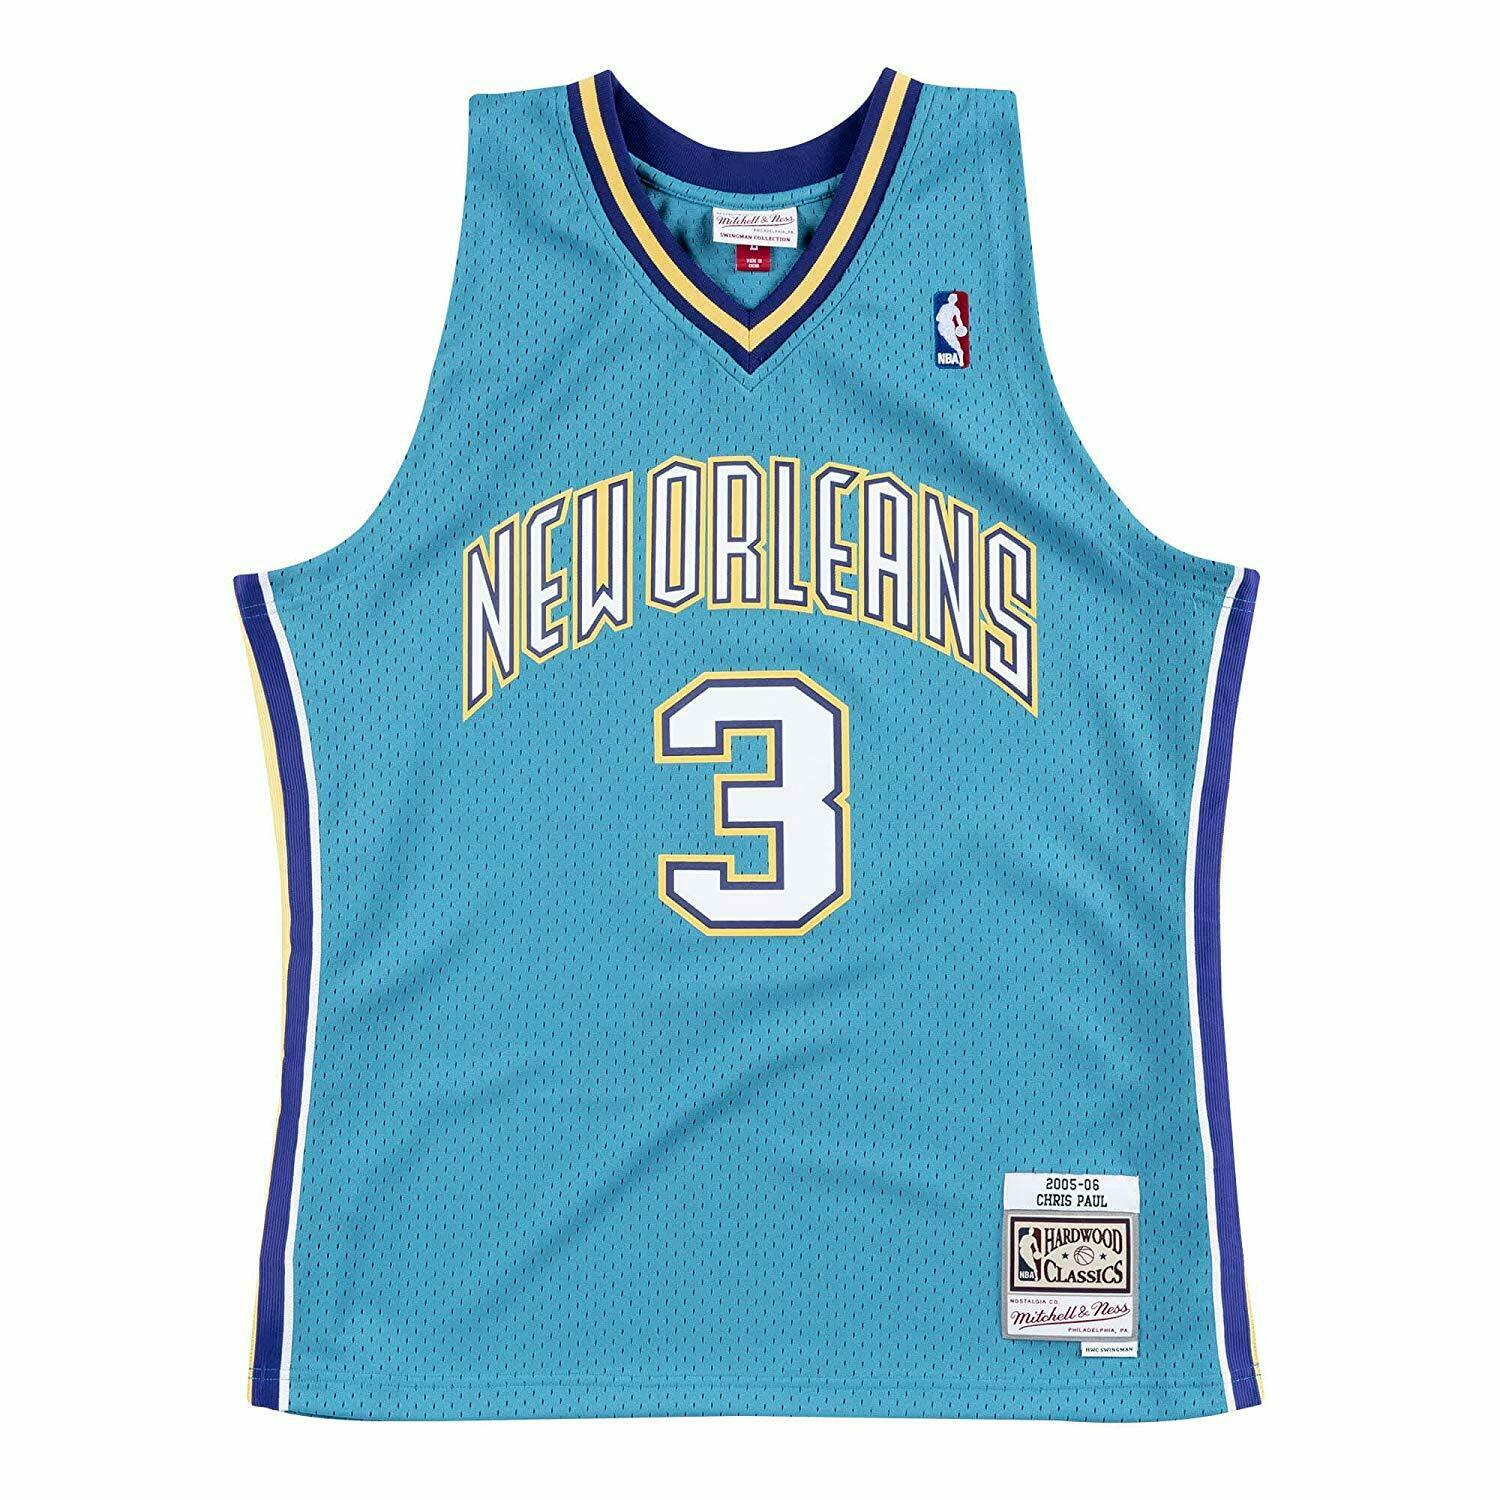 buy popular bd8cc d7604 Details about Chris Paul #3 Charlotte Hornets Mitchell & Ness Mesh NBA  Throwback Teal Jersey